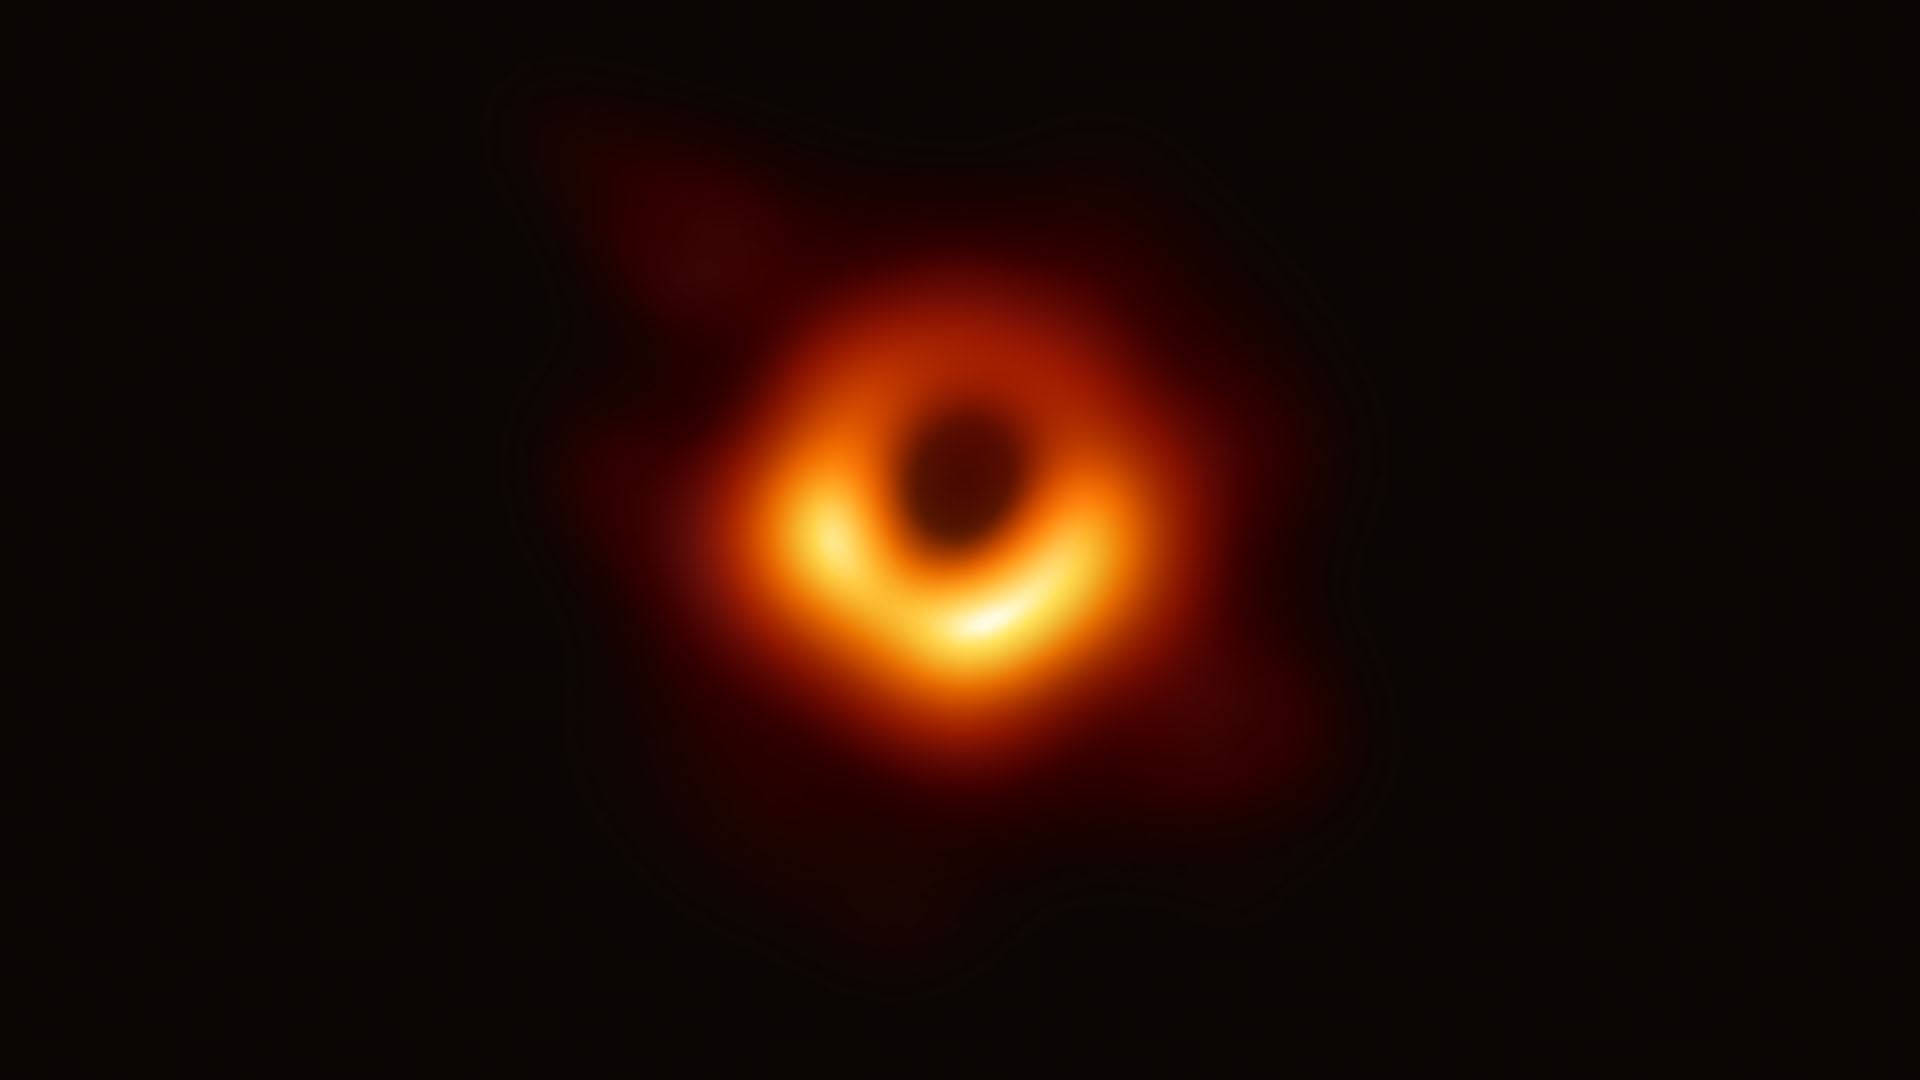 - Black hole - Do black holes move? Astronomers say a massive one is speeding through space